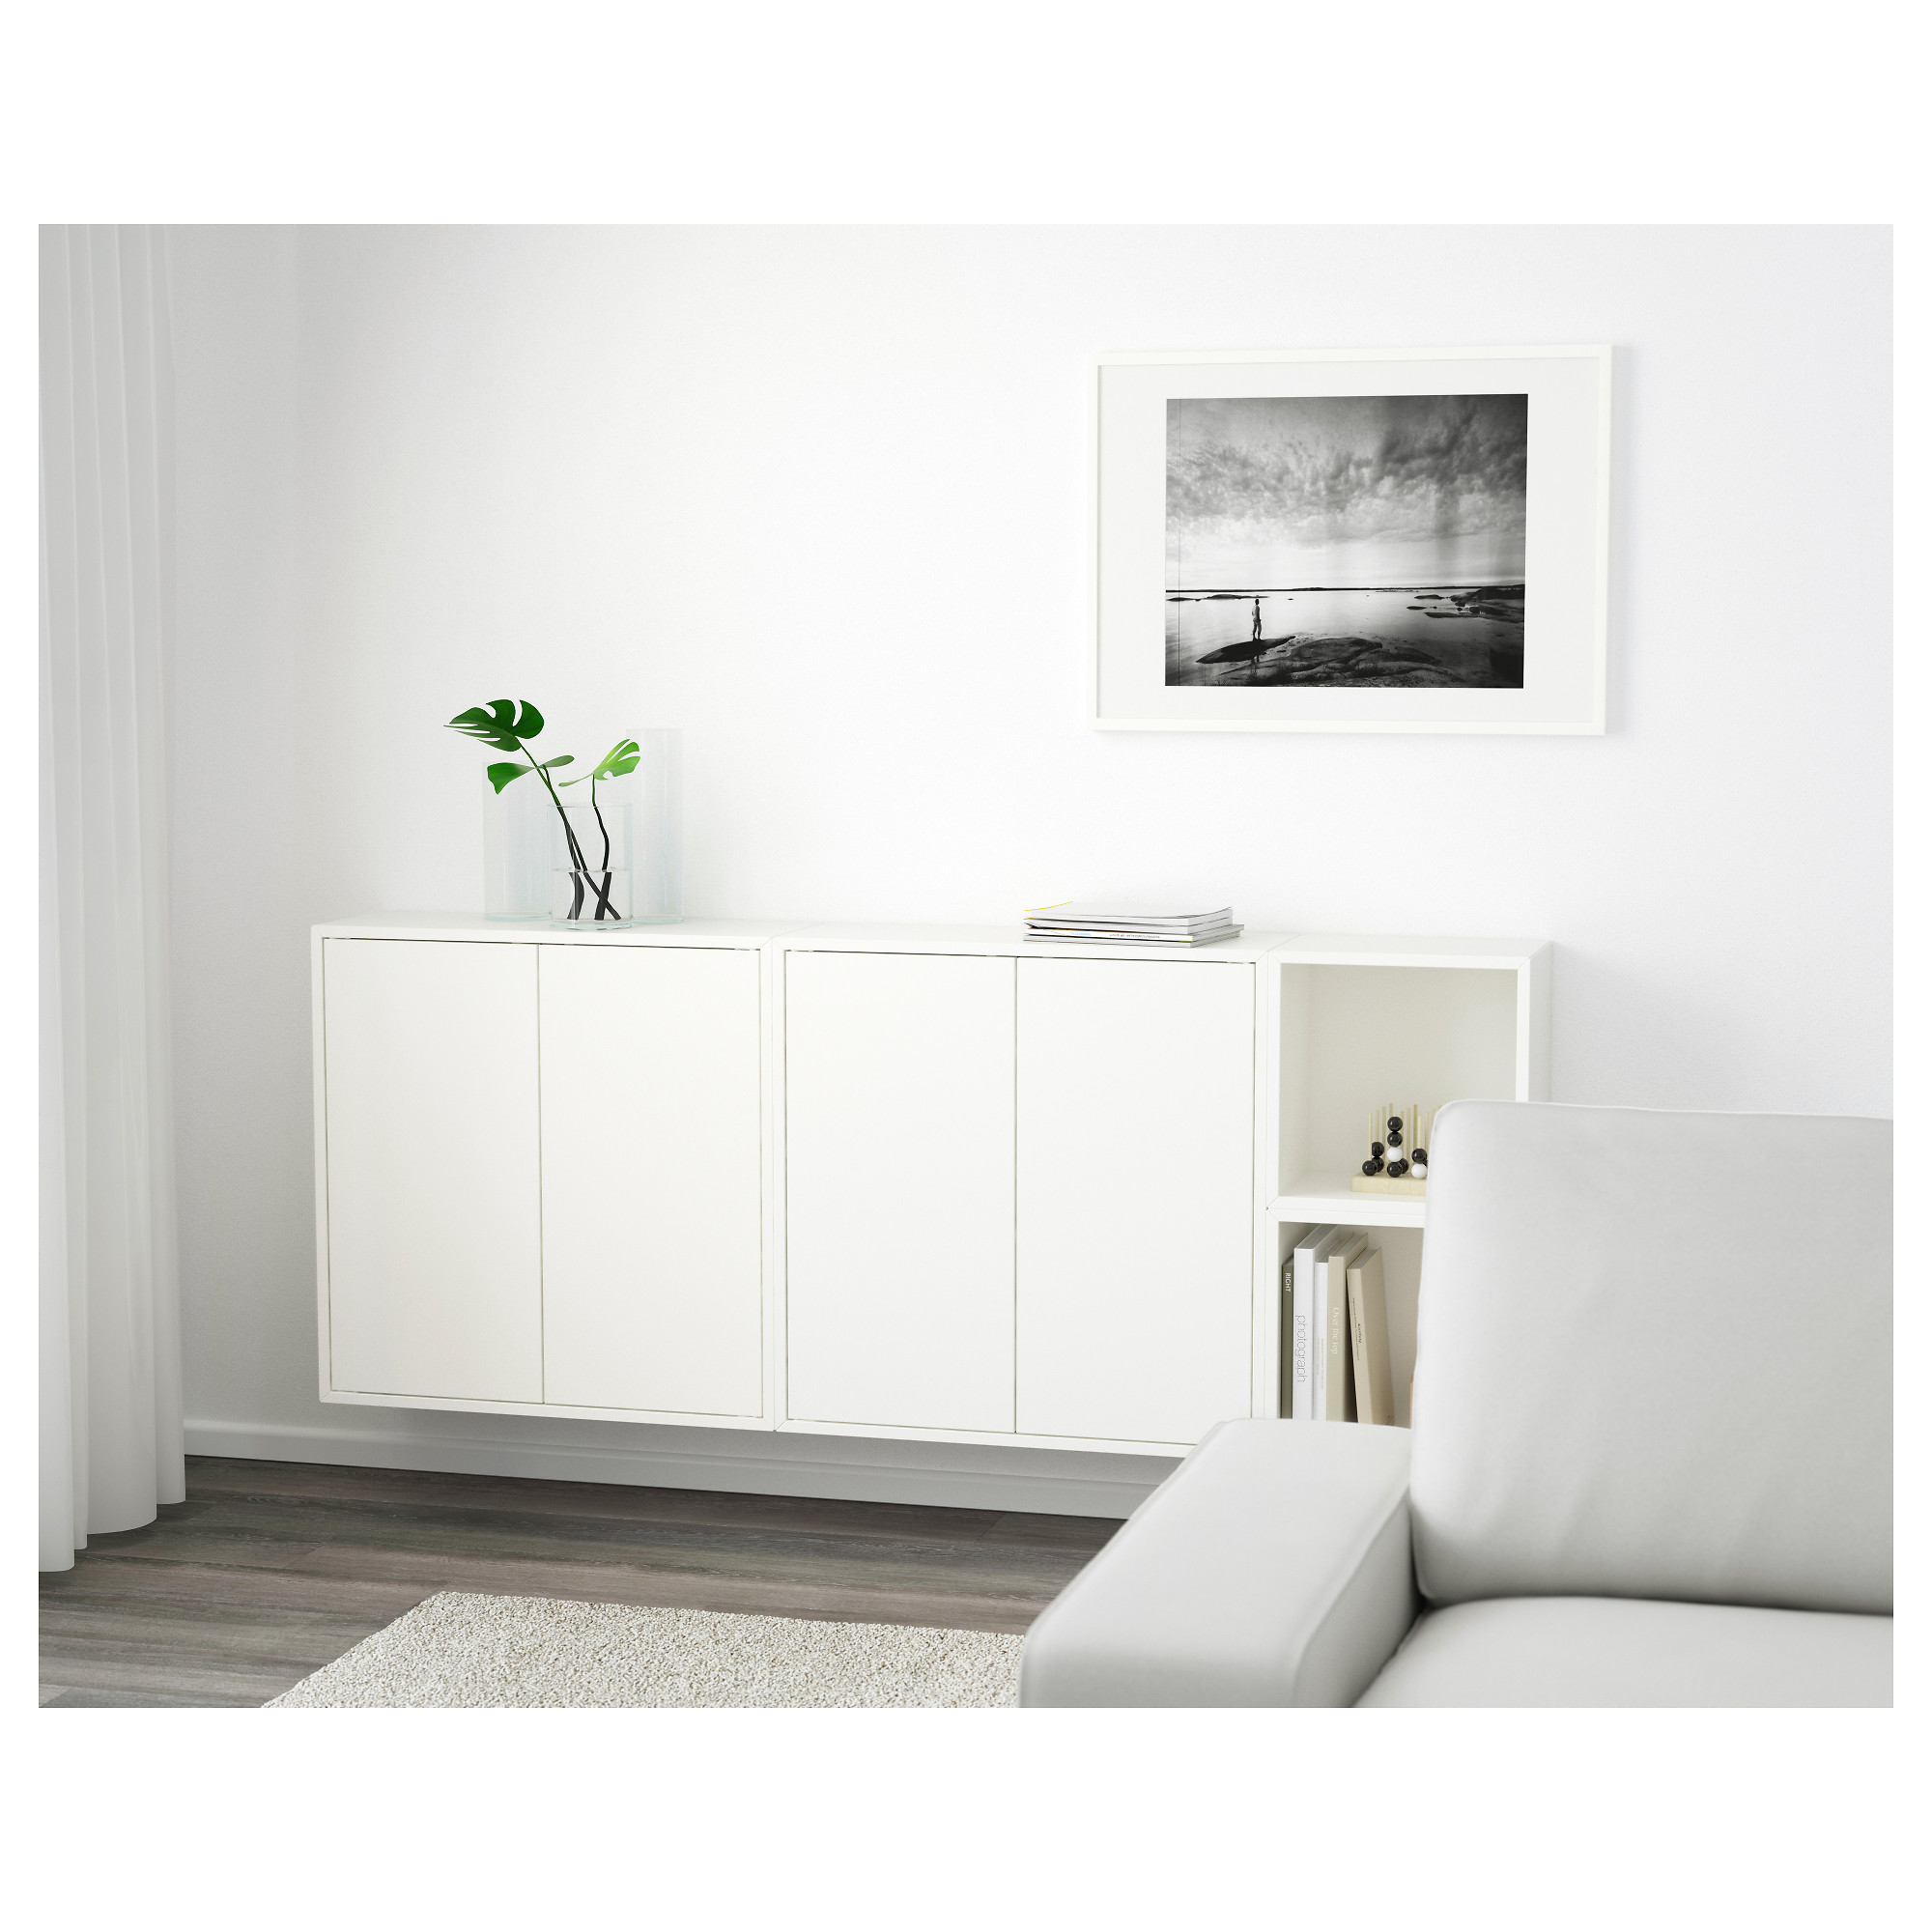 EKET Wall Mounted Cabinet Combination   White   IKEA